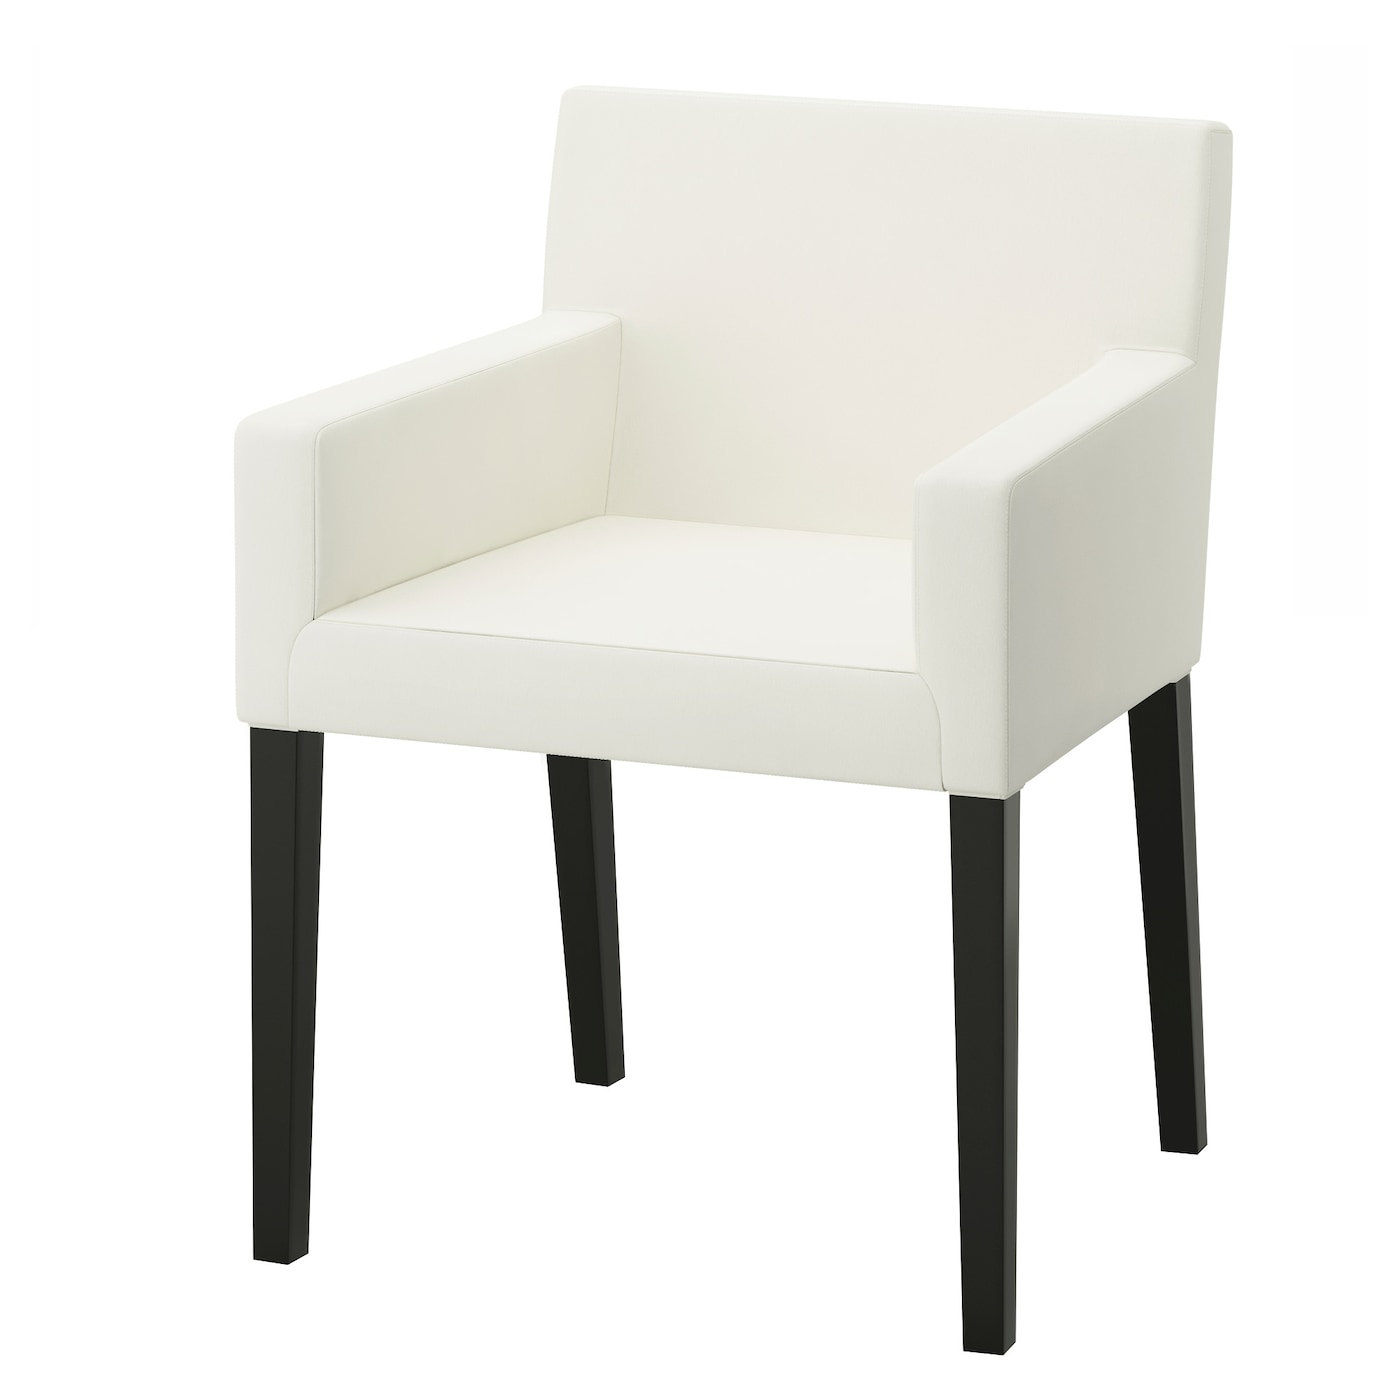 nils chair with armrests black blekinge white ikea. Black Bedroom Furniture Sets. Home Design Ideas